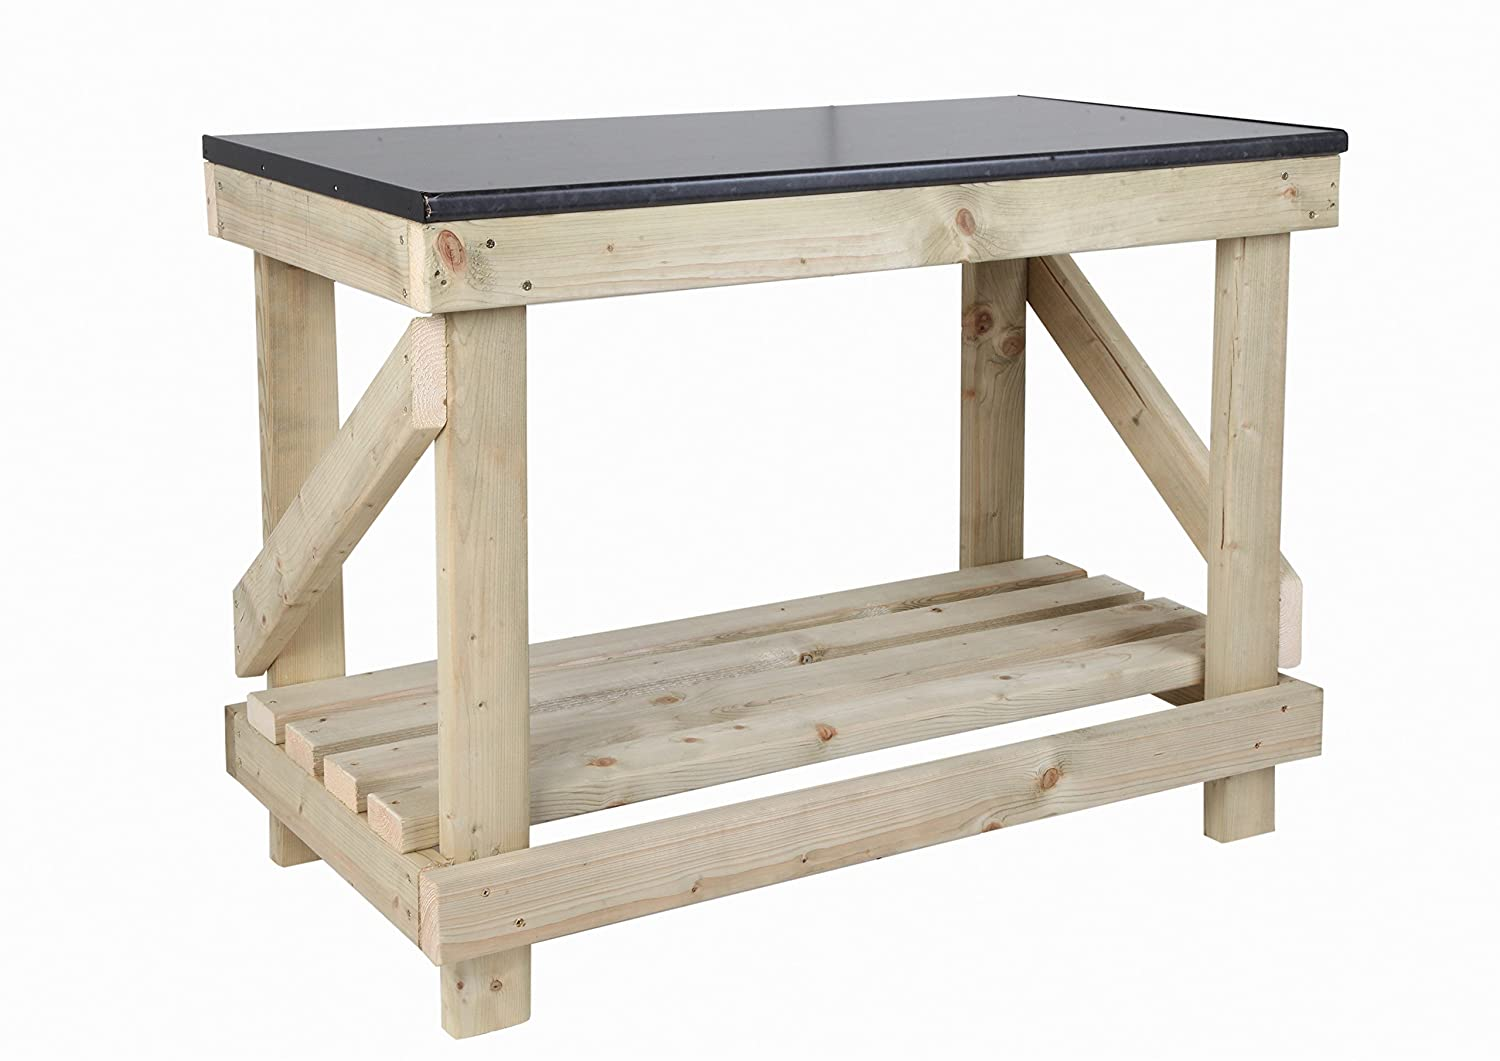 New Hand Made 3 Ft Holz Werkbank Neue Küche Top Style Heavy Duty ...